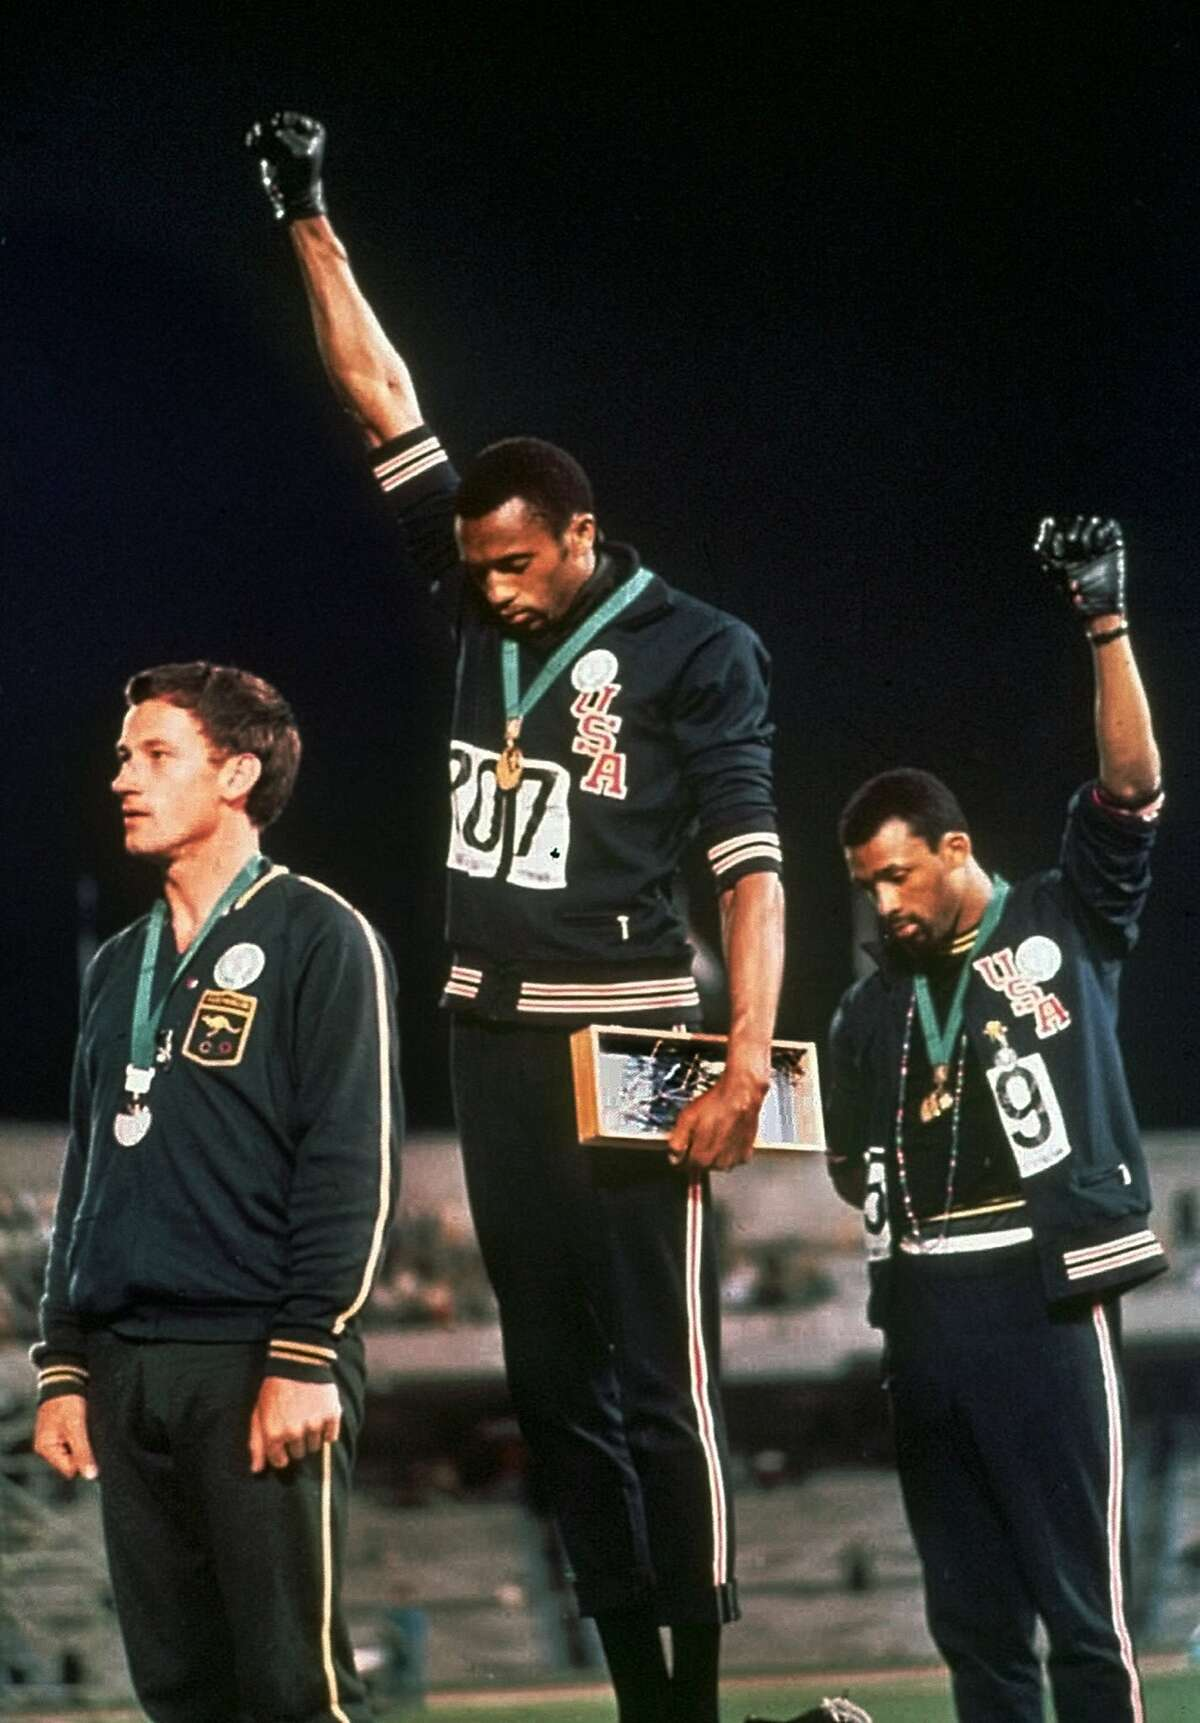 """Extending gloved hands skyward, United States athletes Tommie Smith, center, and John Carlos, right, stare downward during the playing of the """"Star-Spangled Banner"""" after Smith received the gold and Carlos the bronze for the 200 meter run at the Summer Olympic Games in Mexico City in this Oct. 16, 1968 file photo. Australia's silver medalist Peter Norman is at left."""